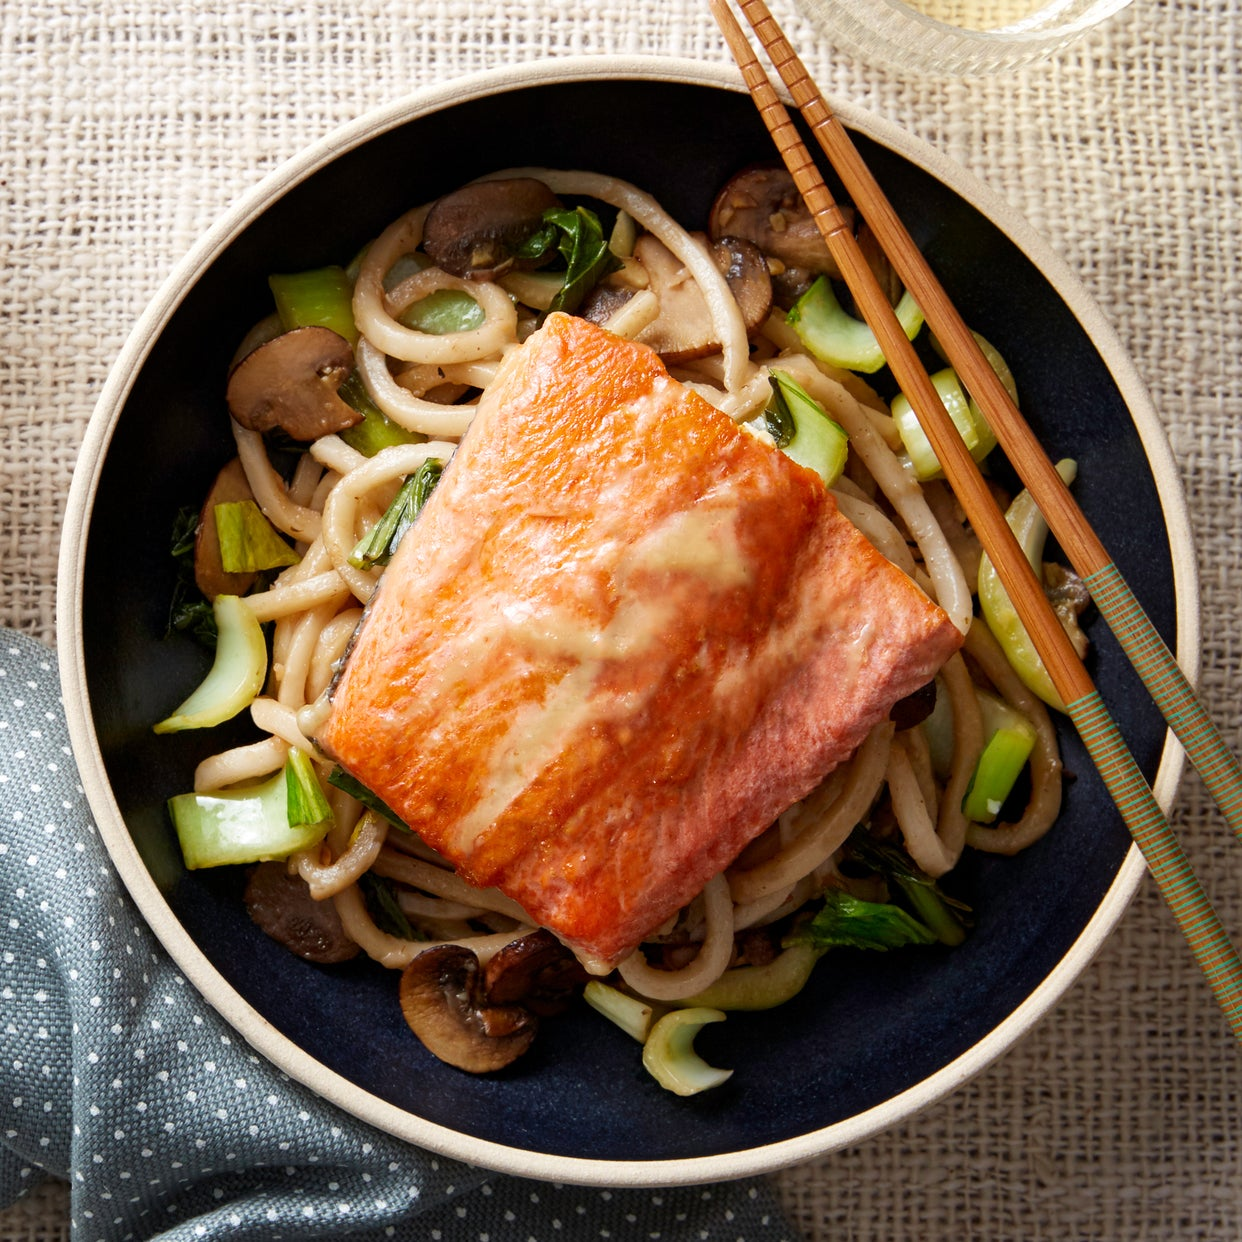 Honey & Miso-Glazed Salmon with Udon Noodles & Bok Choy